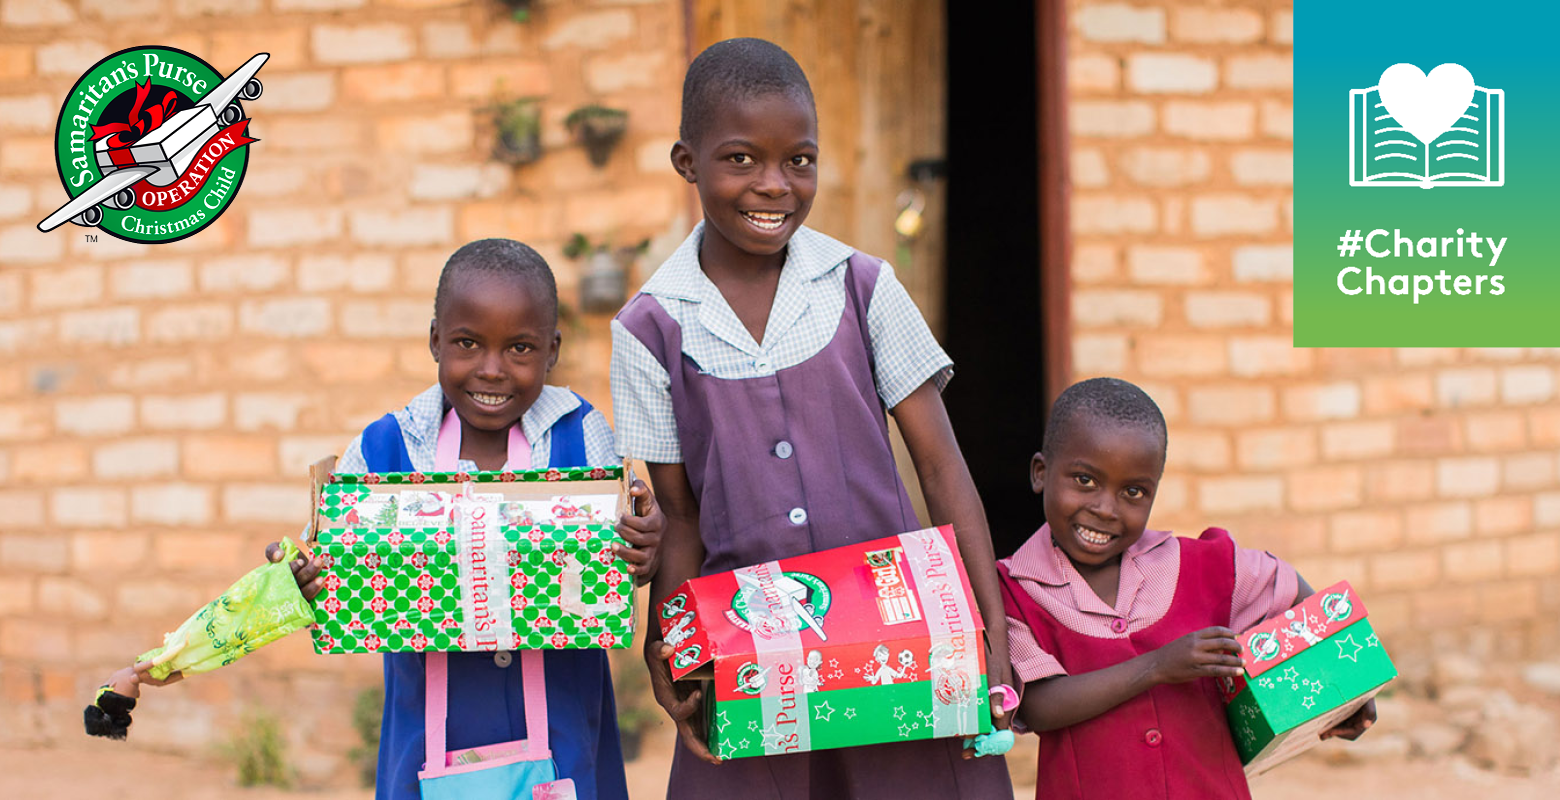 Charity Chapters: Operation Christmas Child is a go!